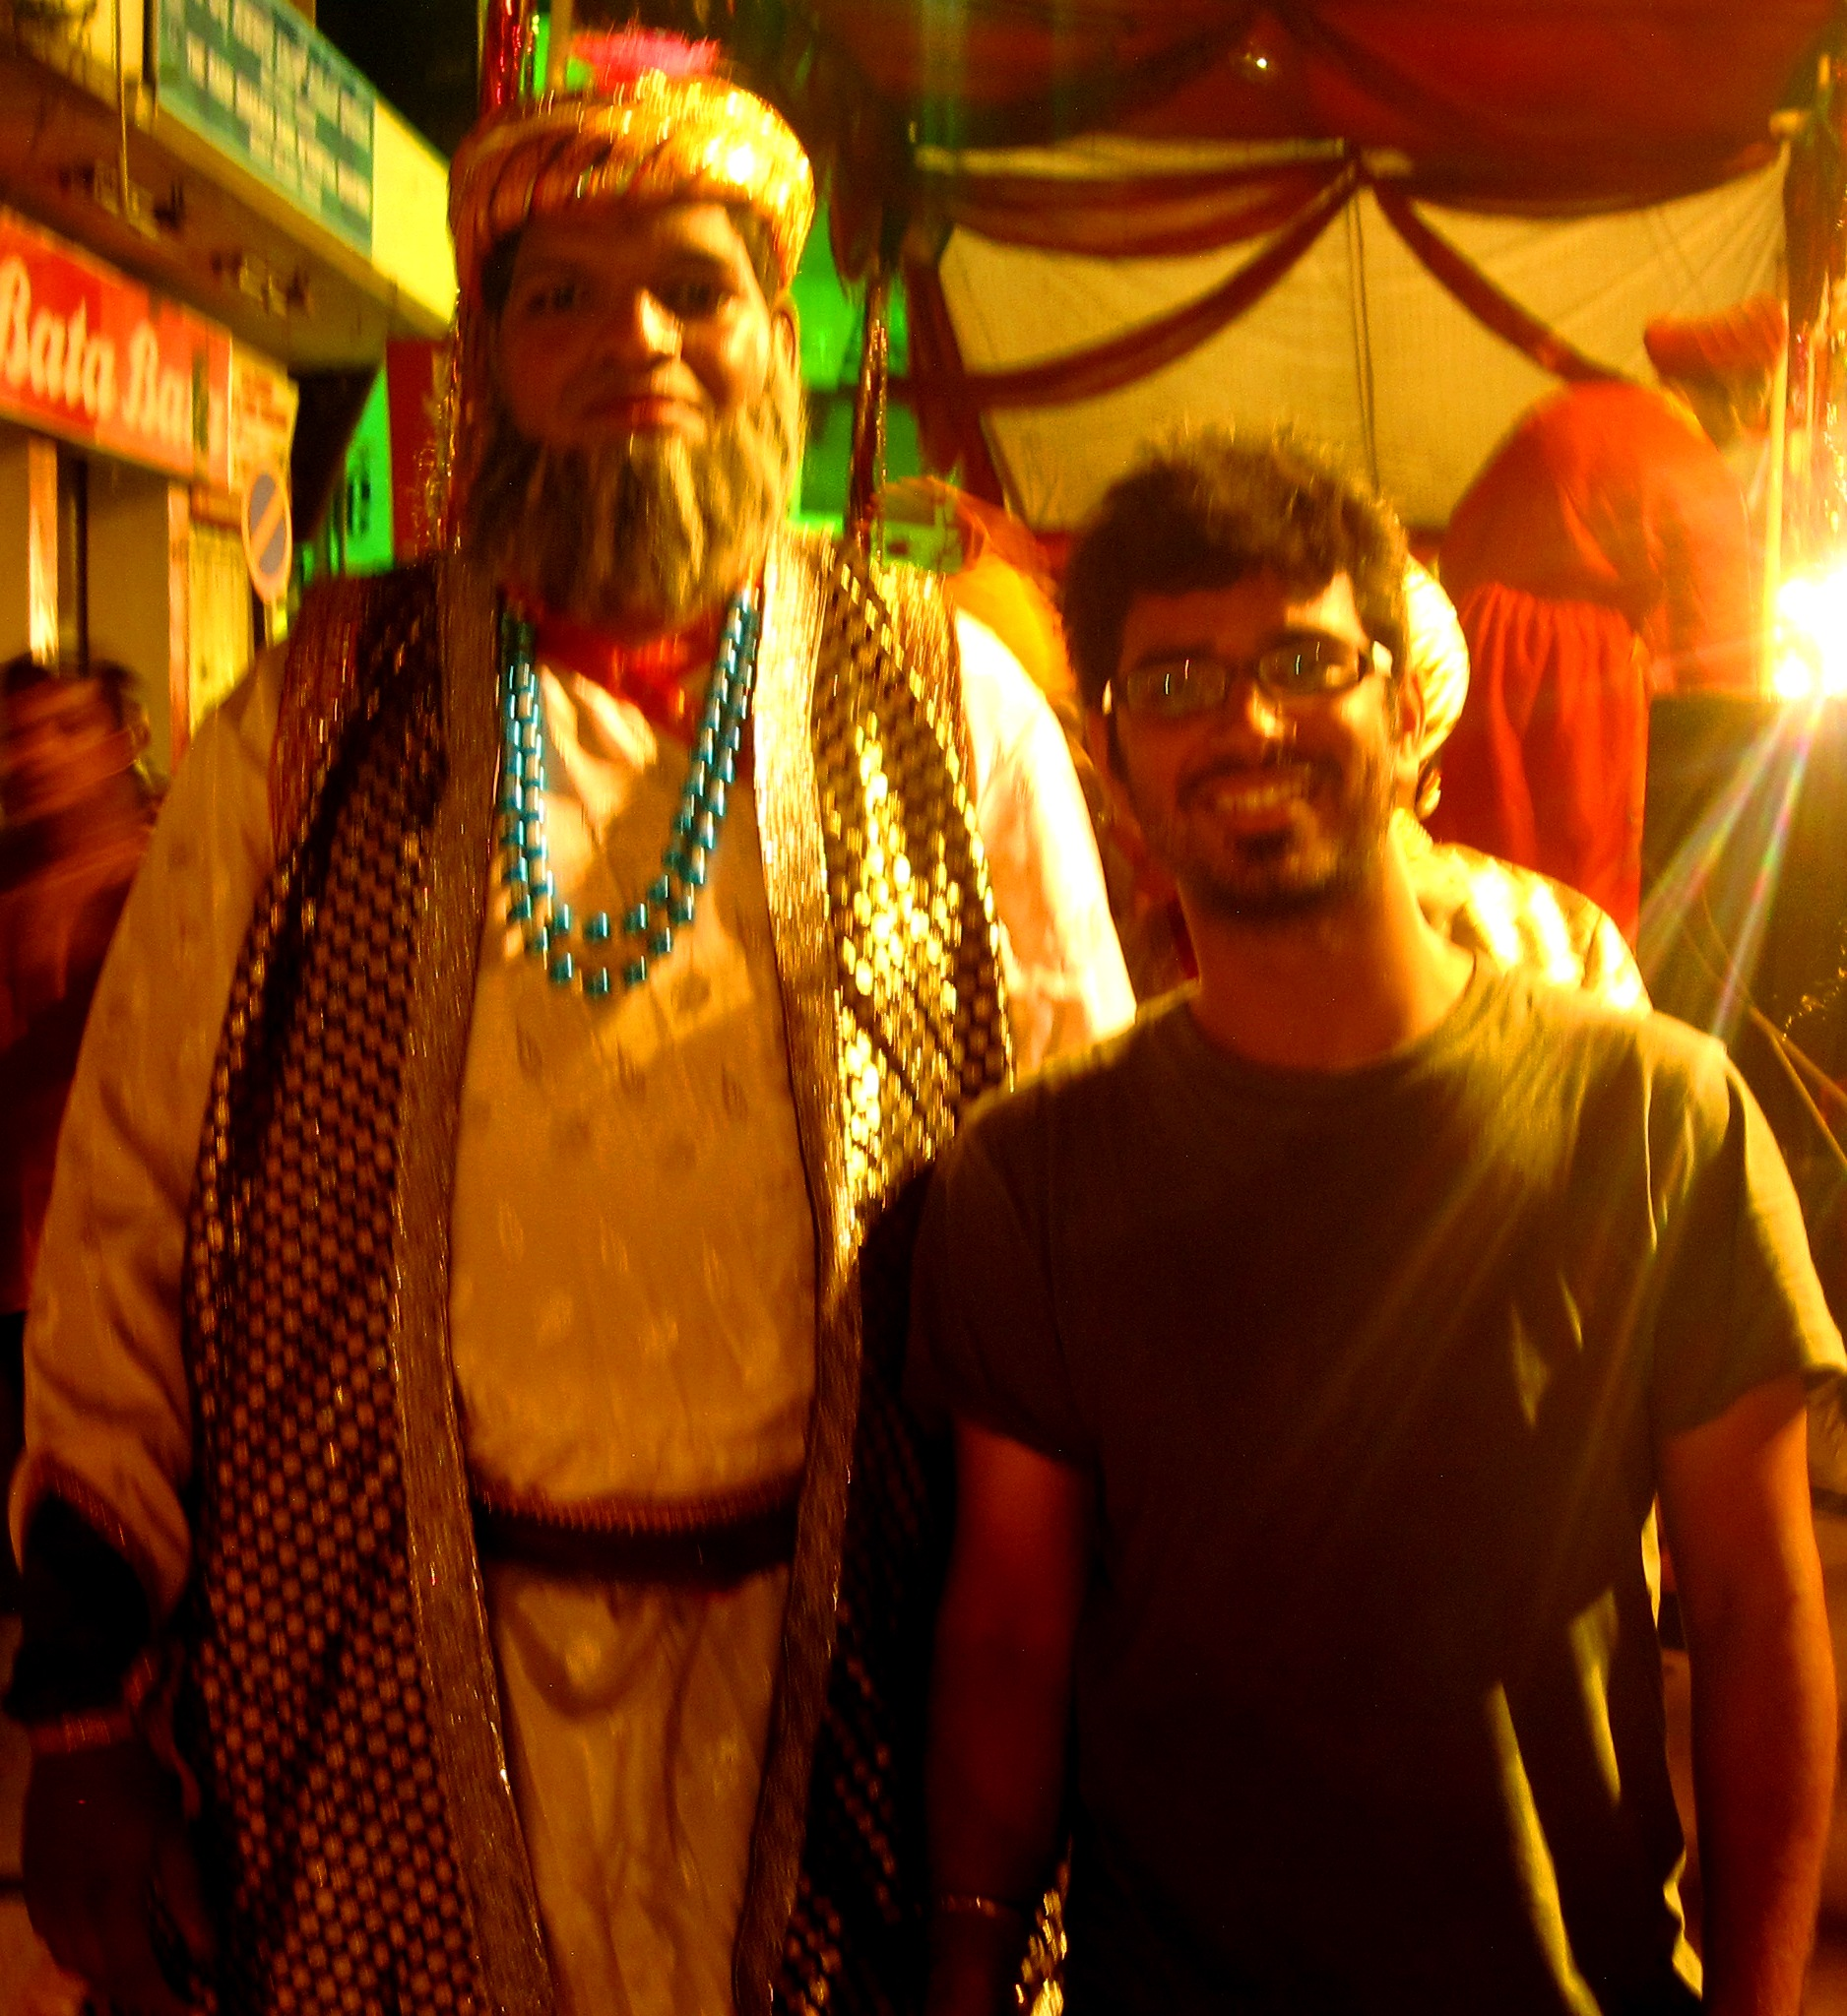 I, with Afzal Khan! (Bijapur General and enemy of Shivaji)